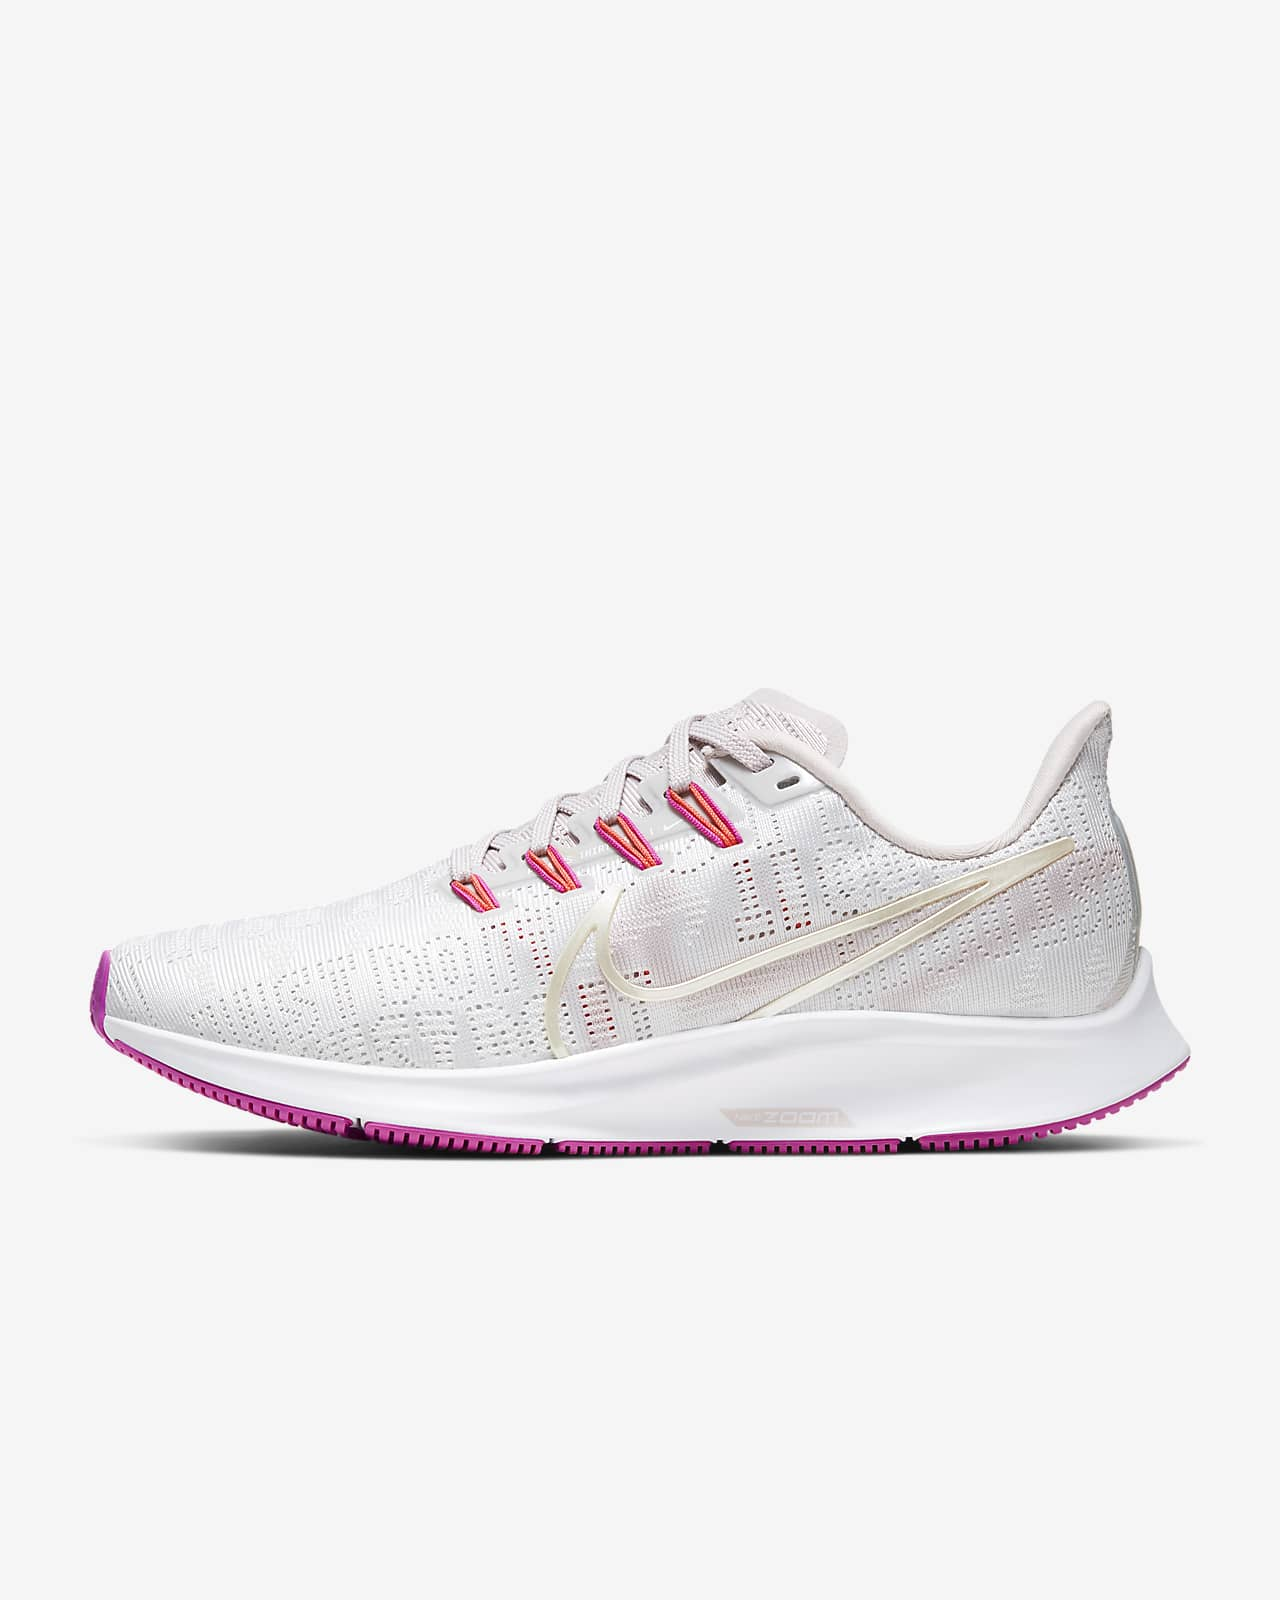 Nike Air Zoom Pegasus 36 Premium Women's Running Shoe